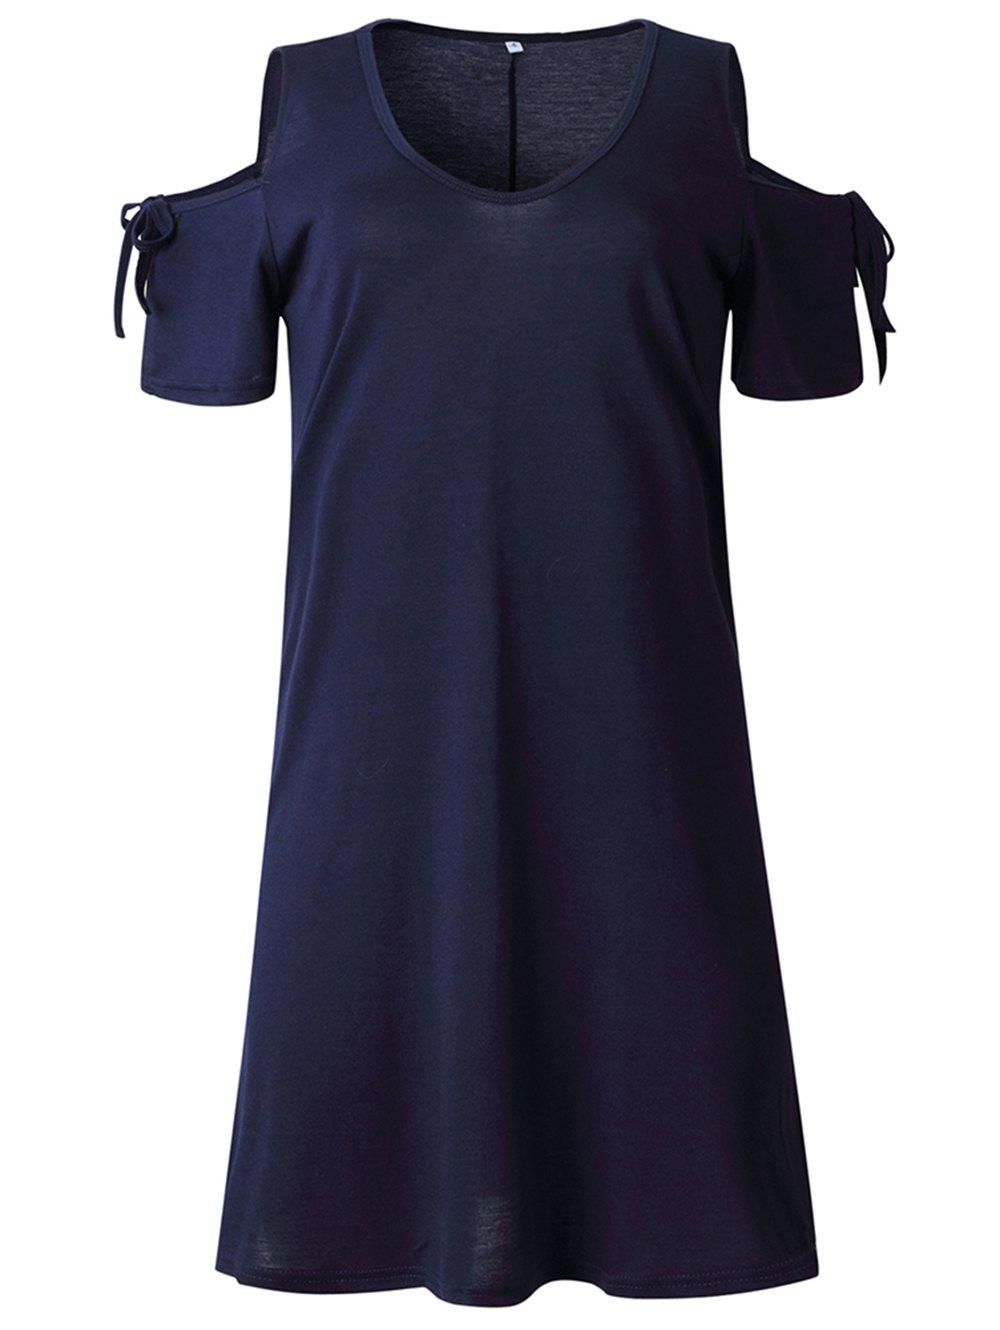 Cheap 2019 New Womens Cold Shoulder Tunic Top T-Shirt Swing Dress